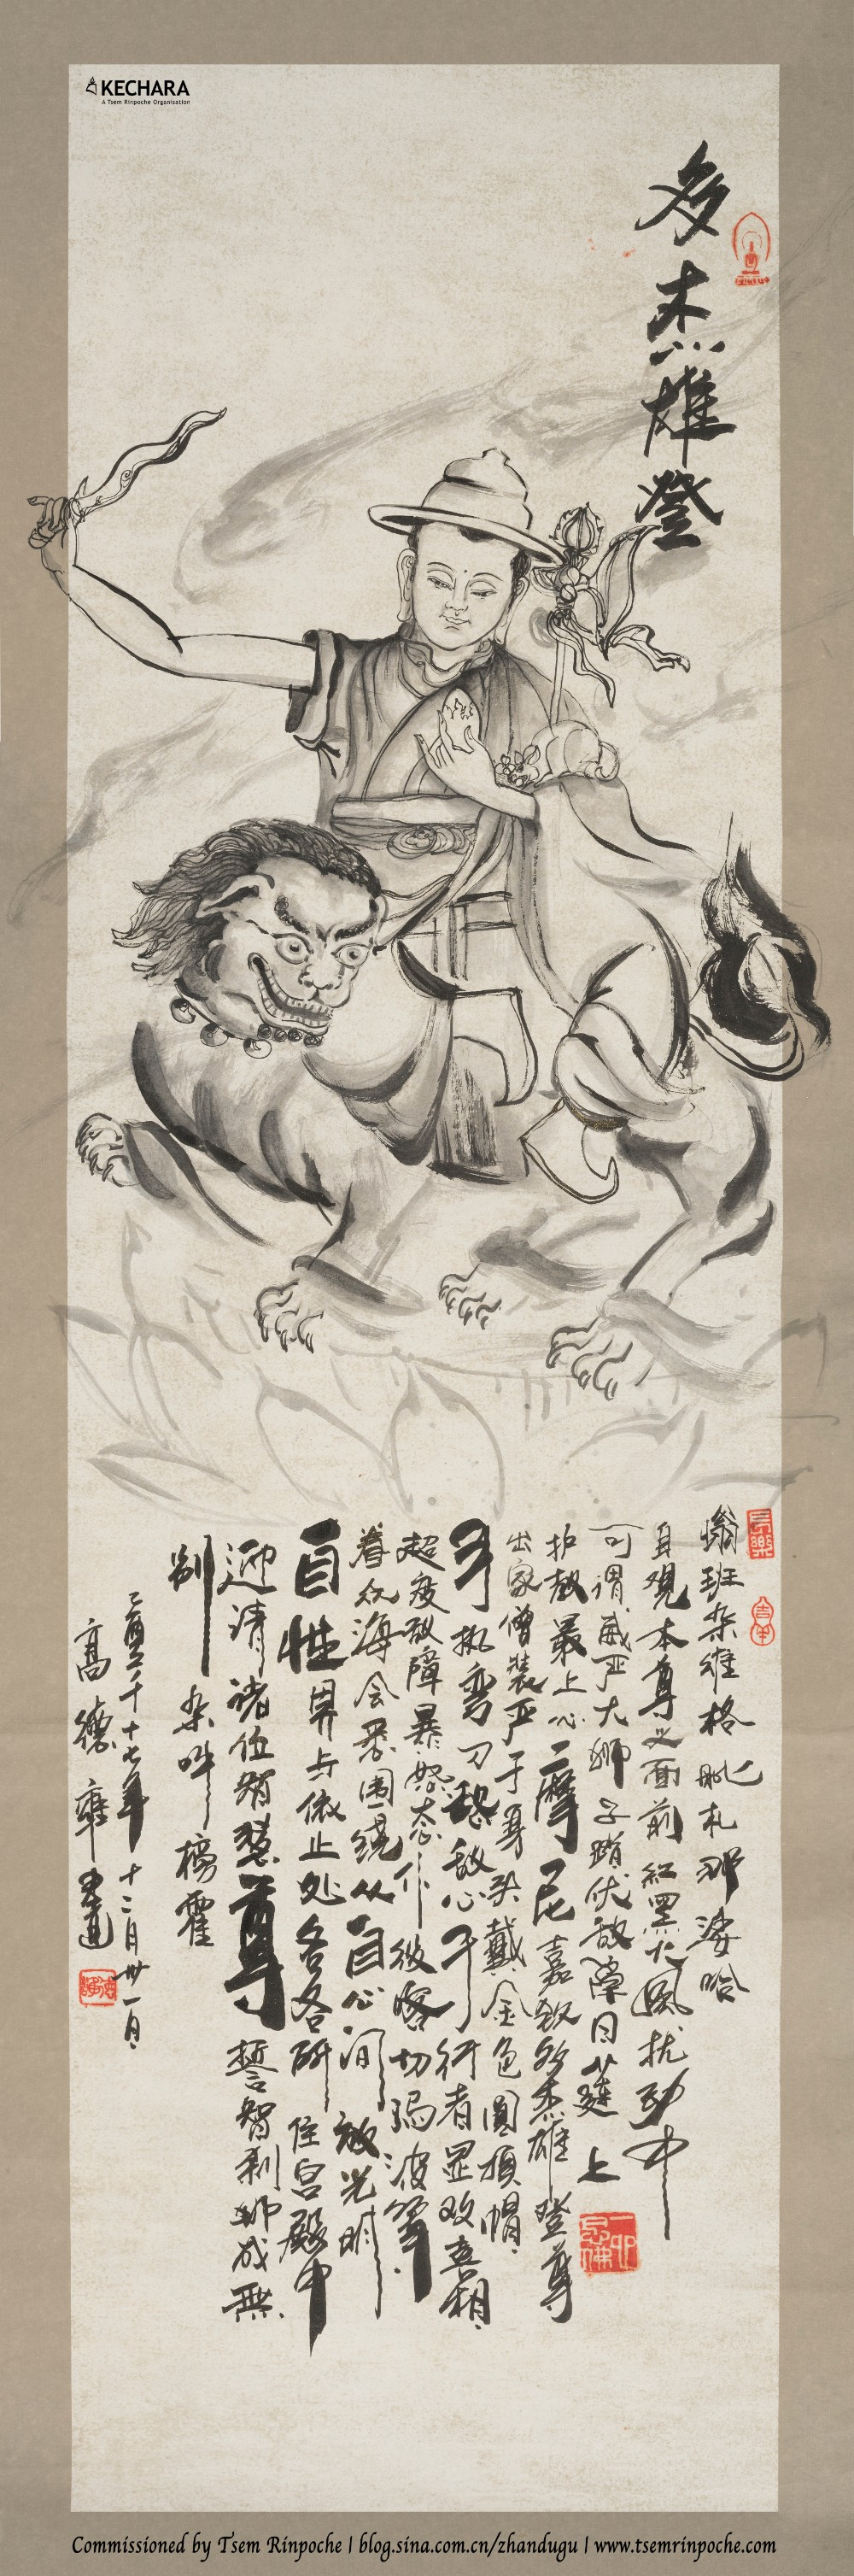 Another depiction of Dorje Shugden in traditional Chinese style. Click on image to enlarge.